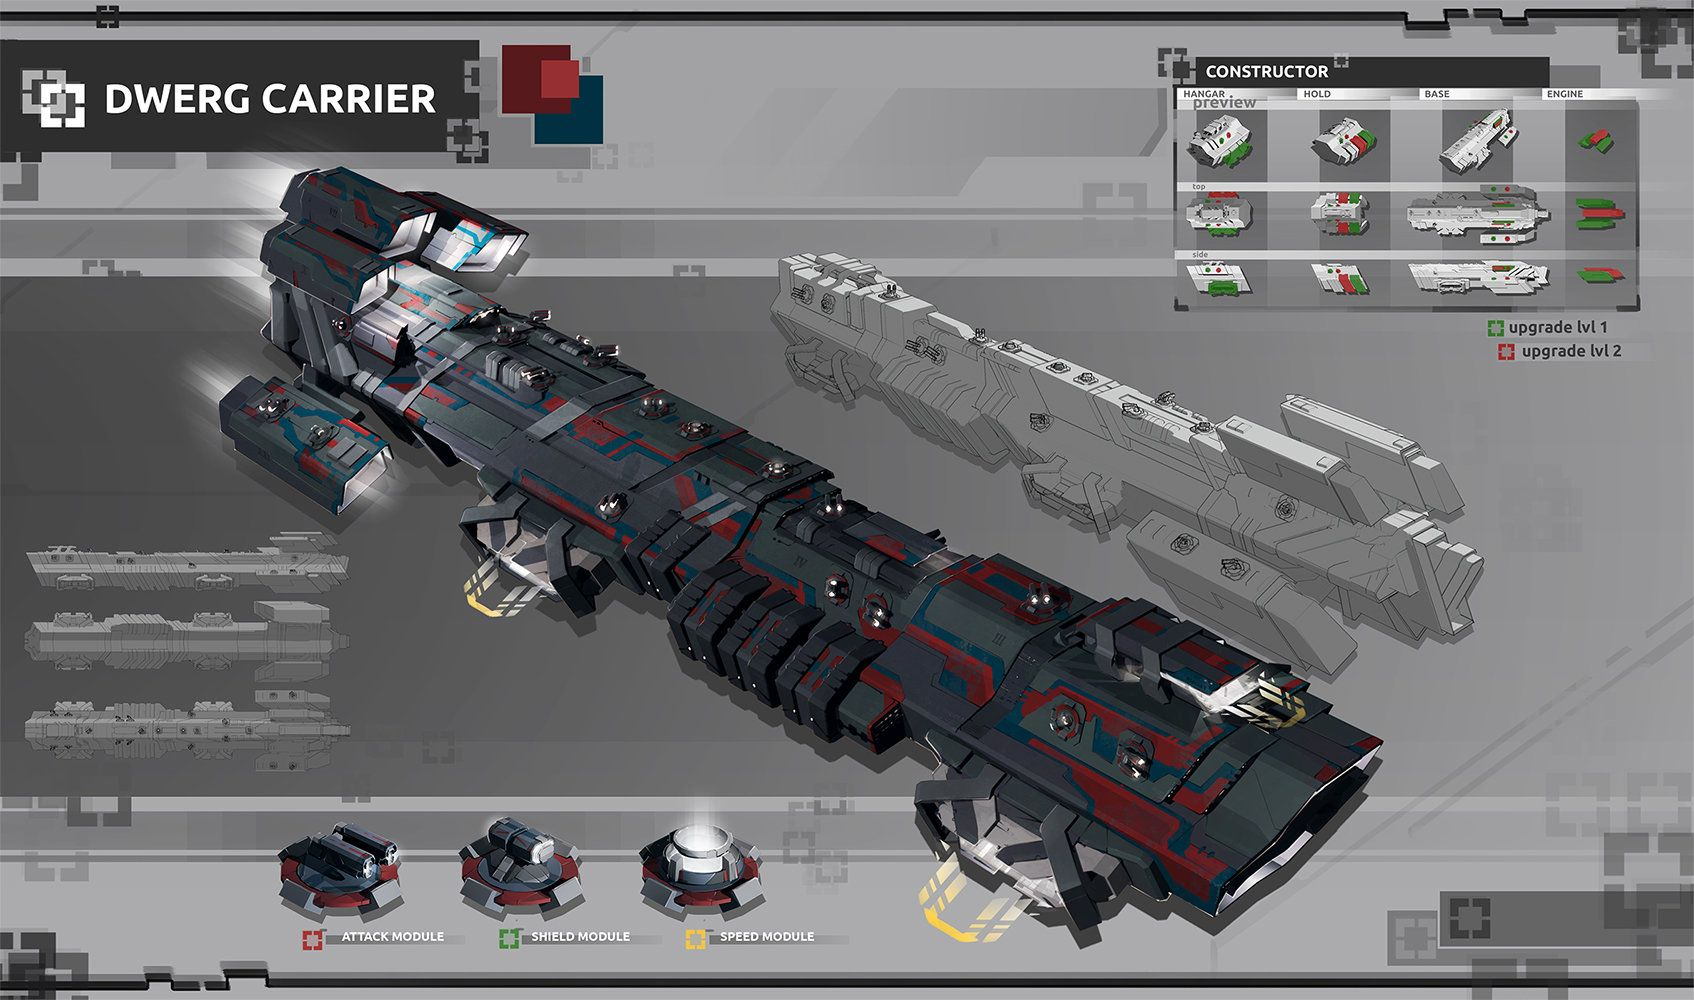 Carrier Concept Art